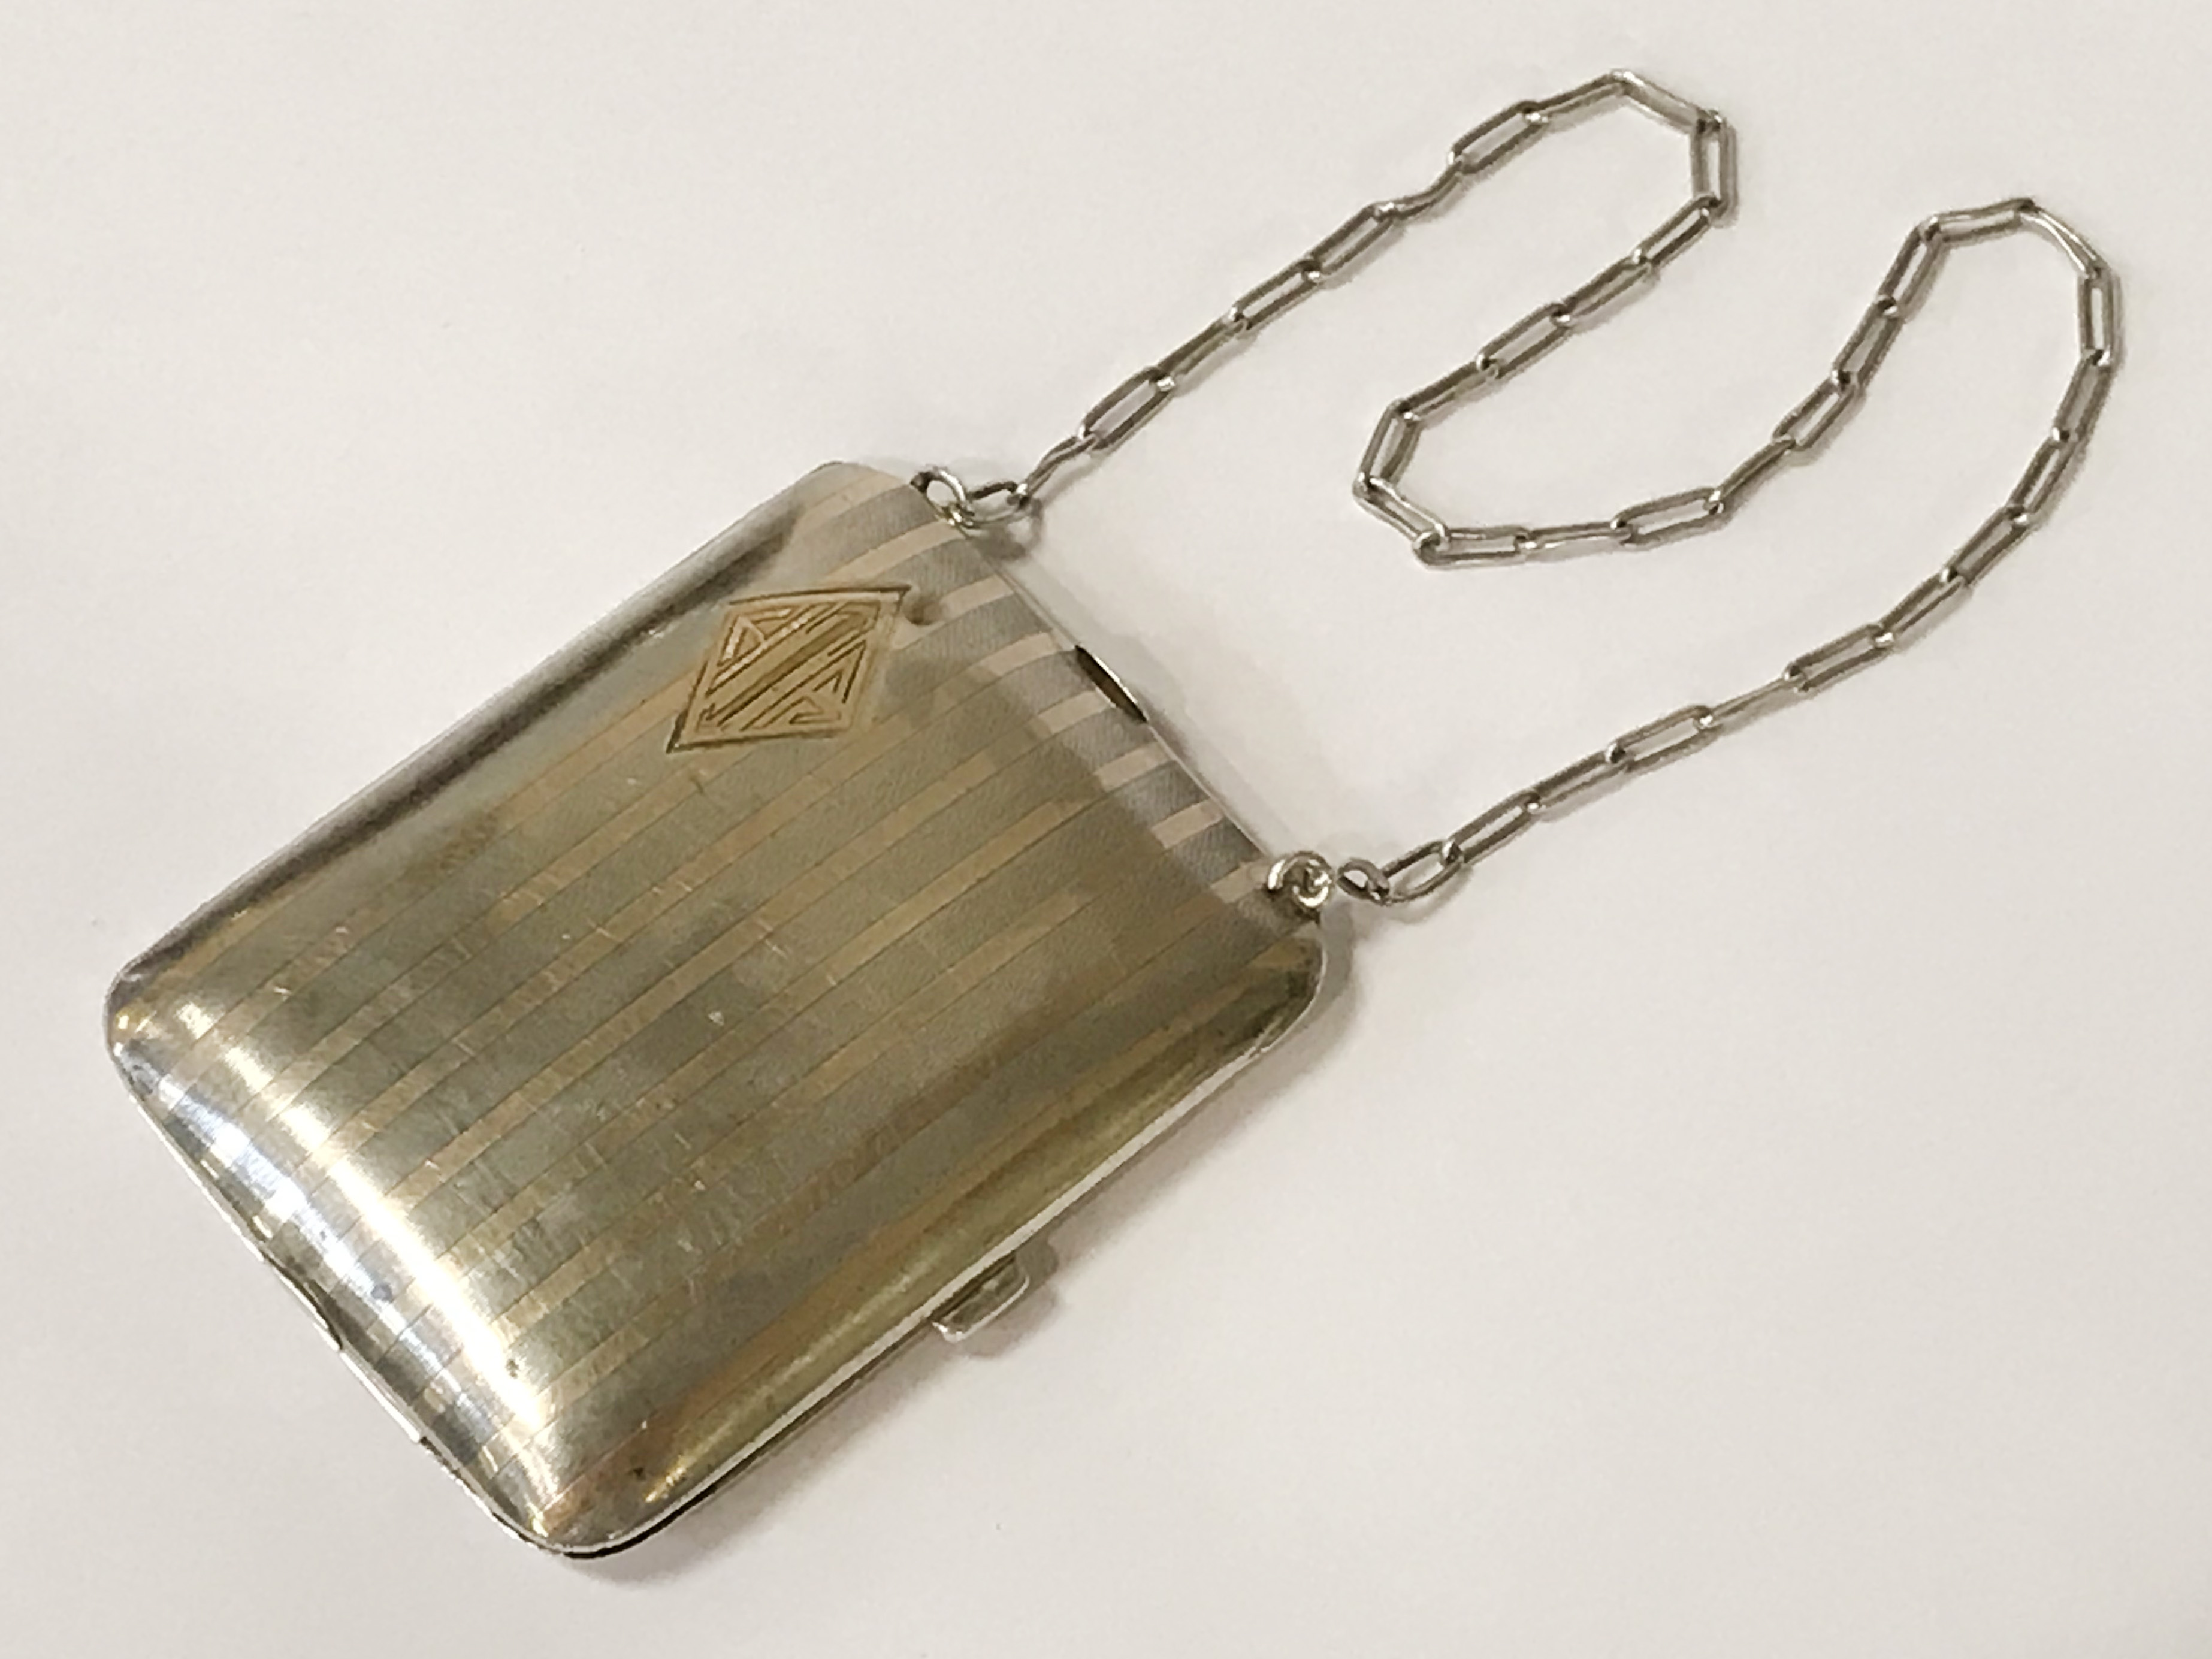 HM SILVER & GOLD INLAID COMPACT - 9CMS X 6.5CMS